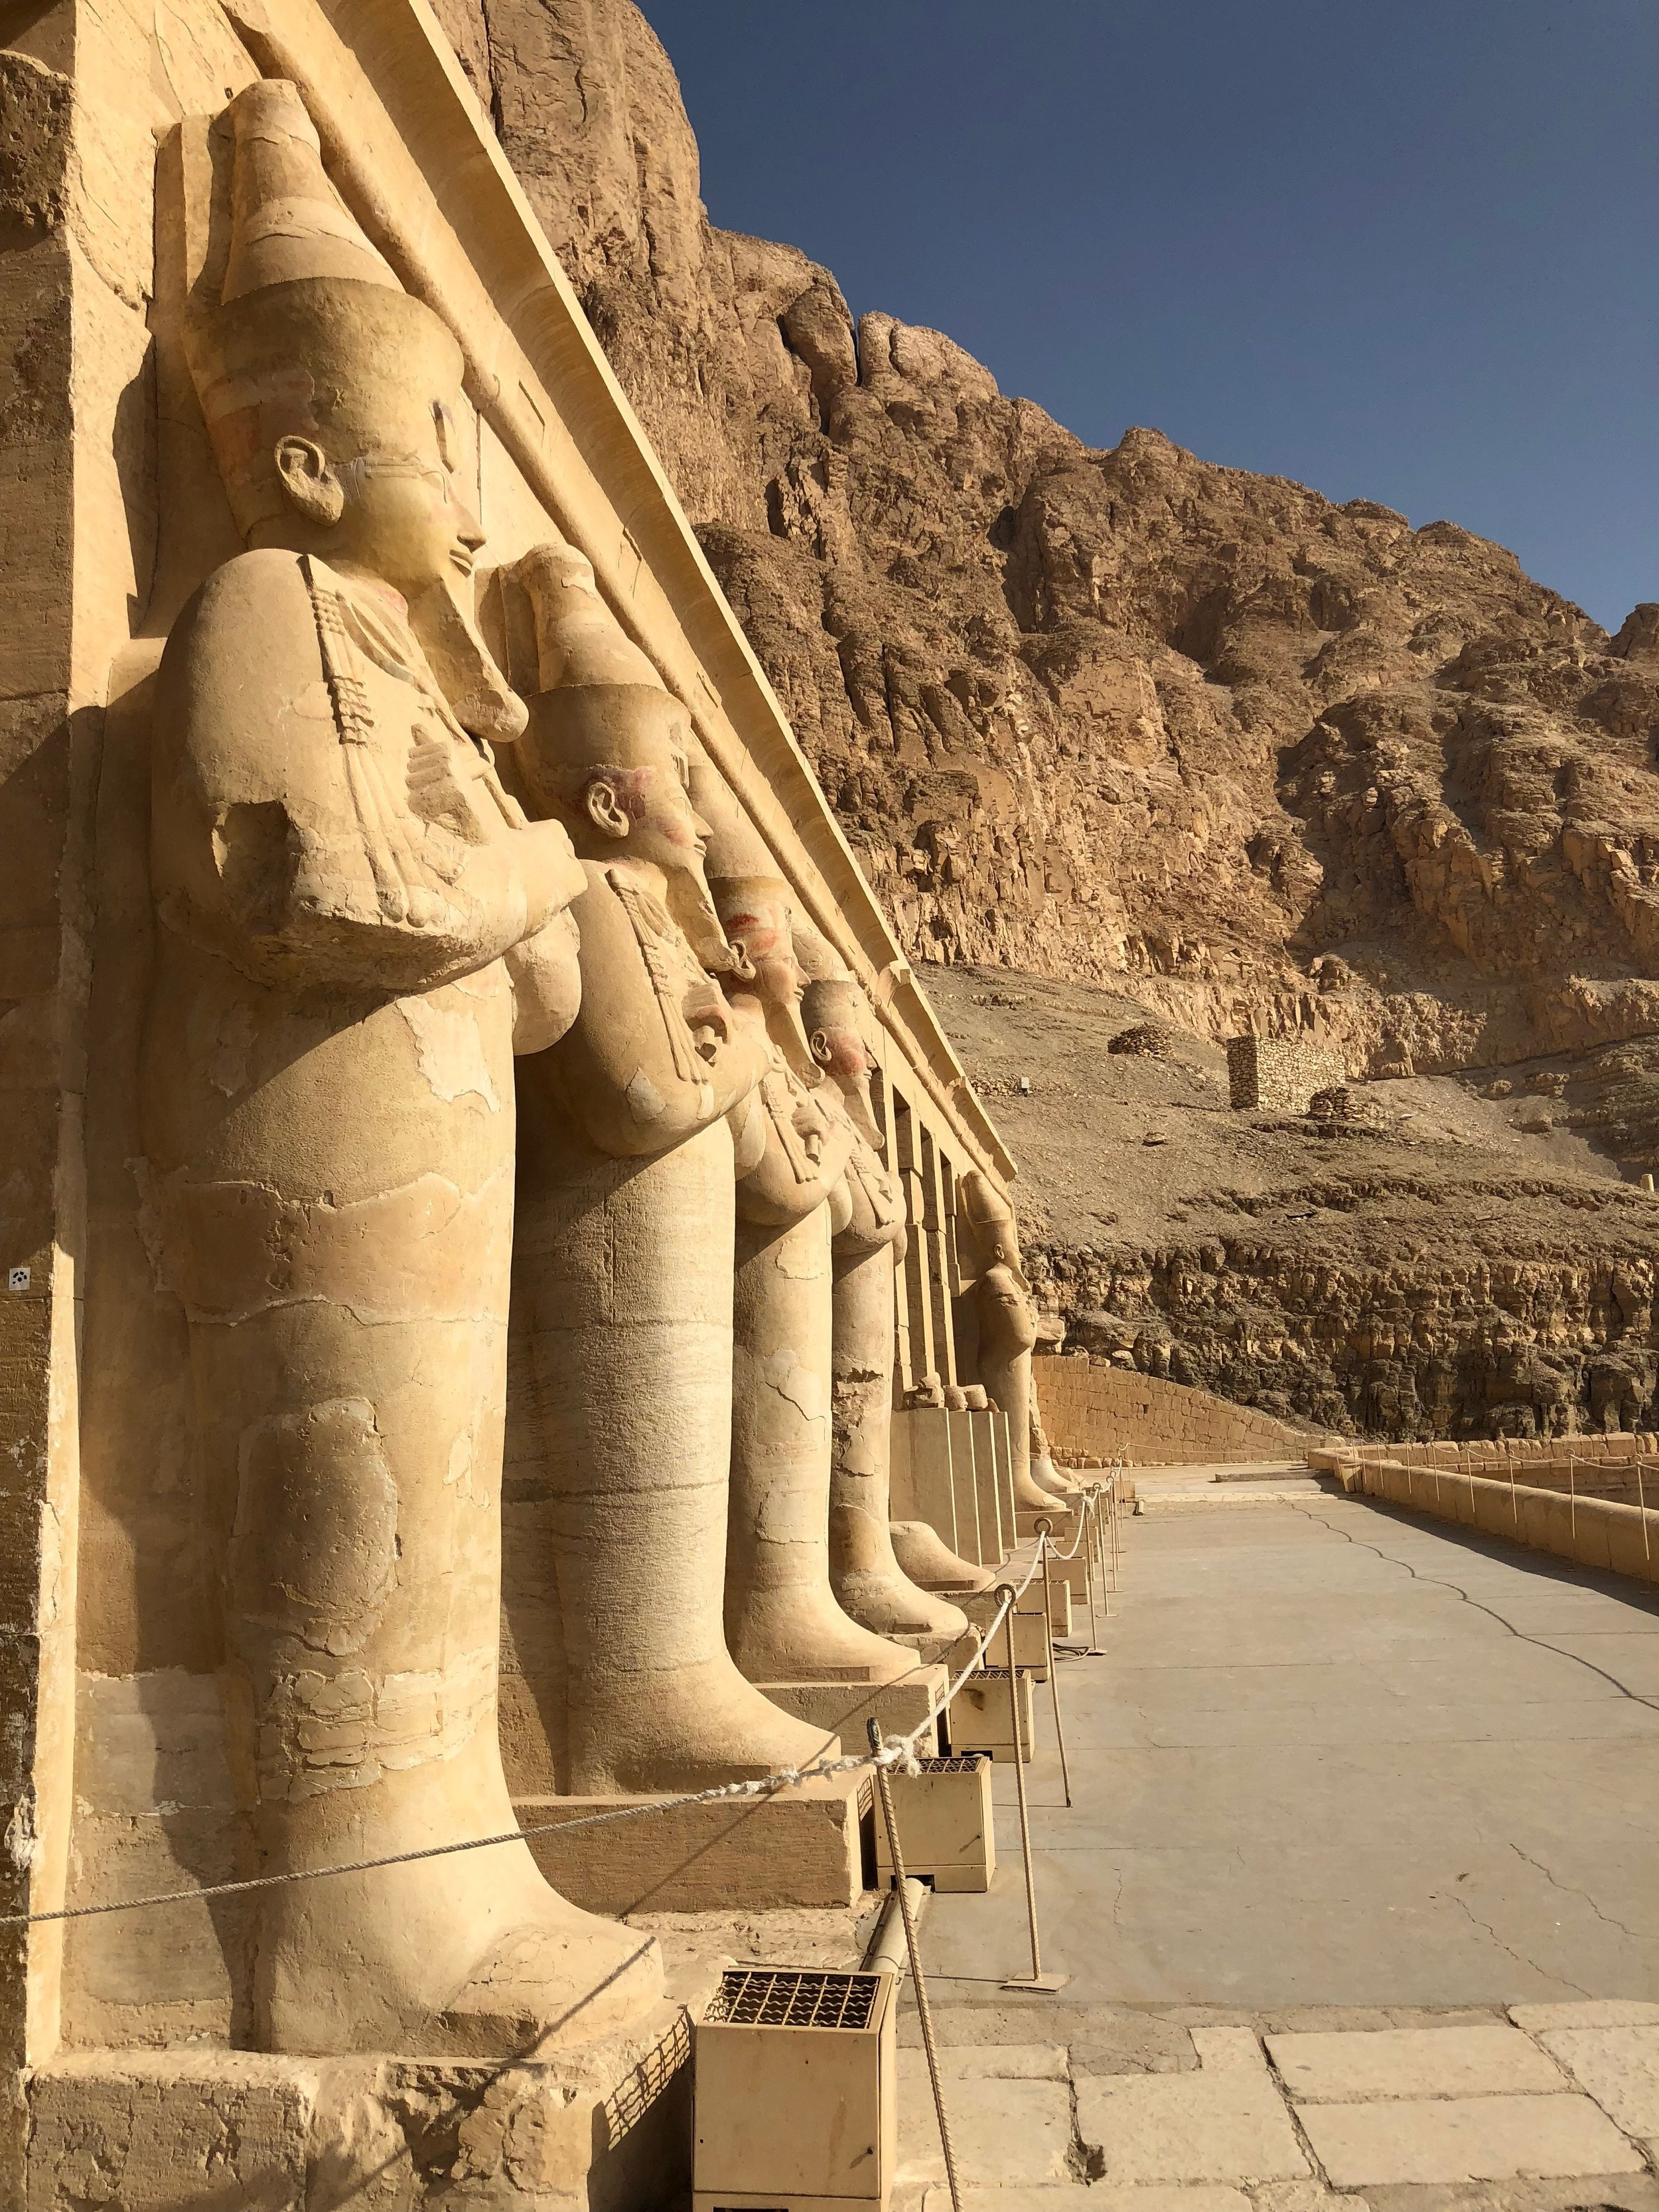 Statues of Hatshepsut atop her temple.